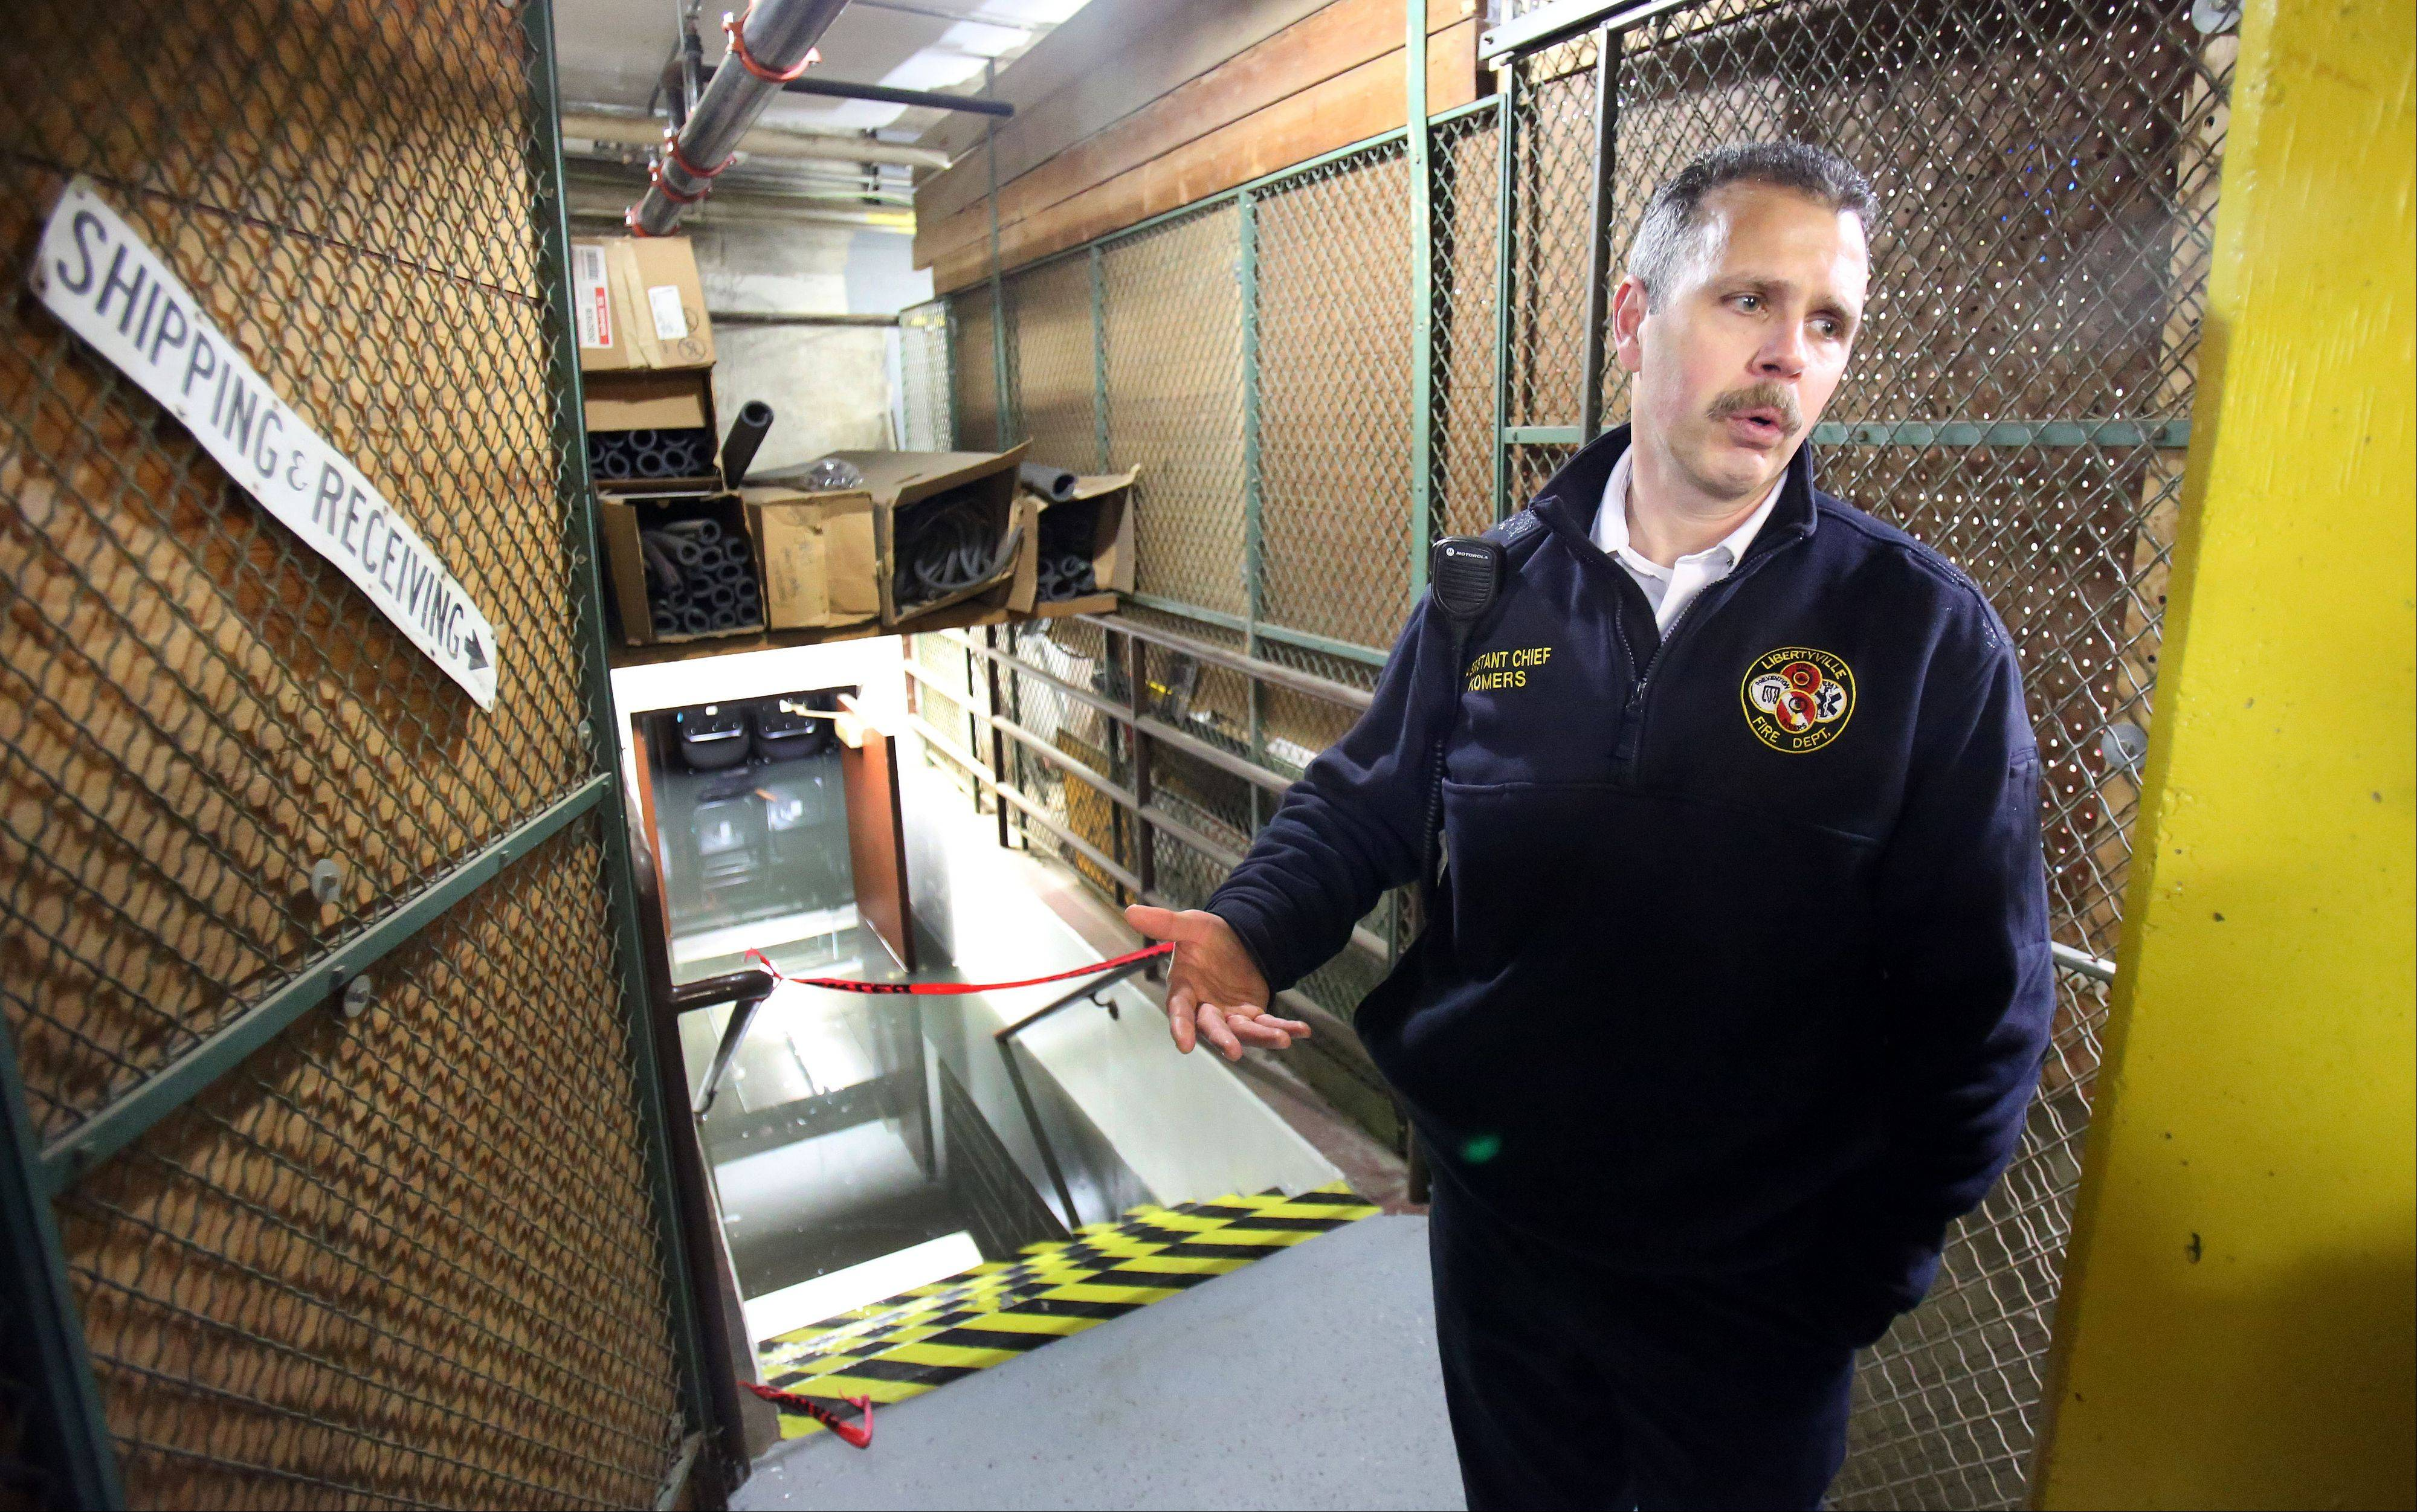 An April rainstorm flooded a subbasement at Libertyville High School. Here, Assistant Fire Chief Ken Komers surveys the damage.